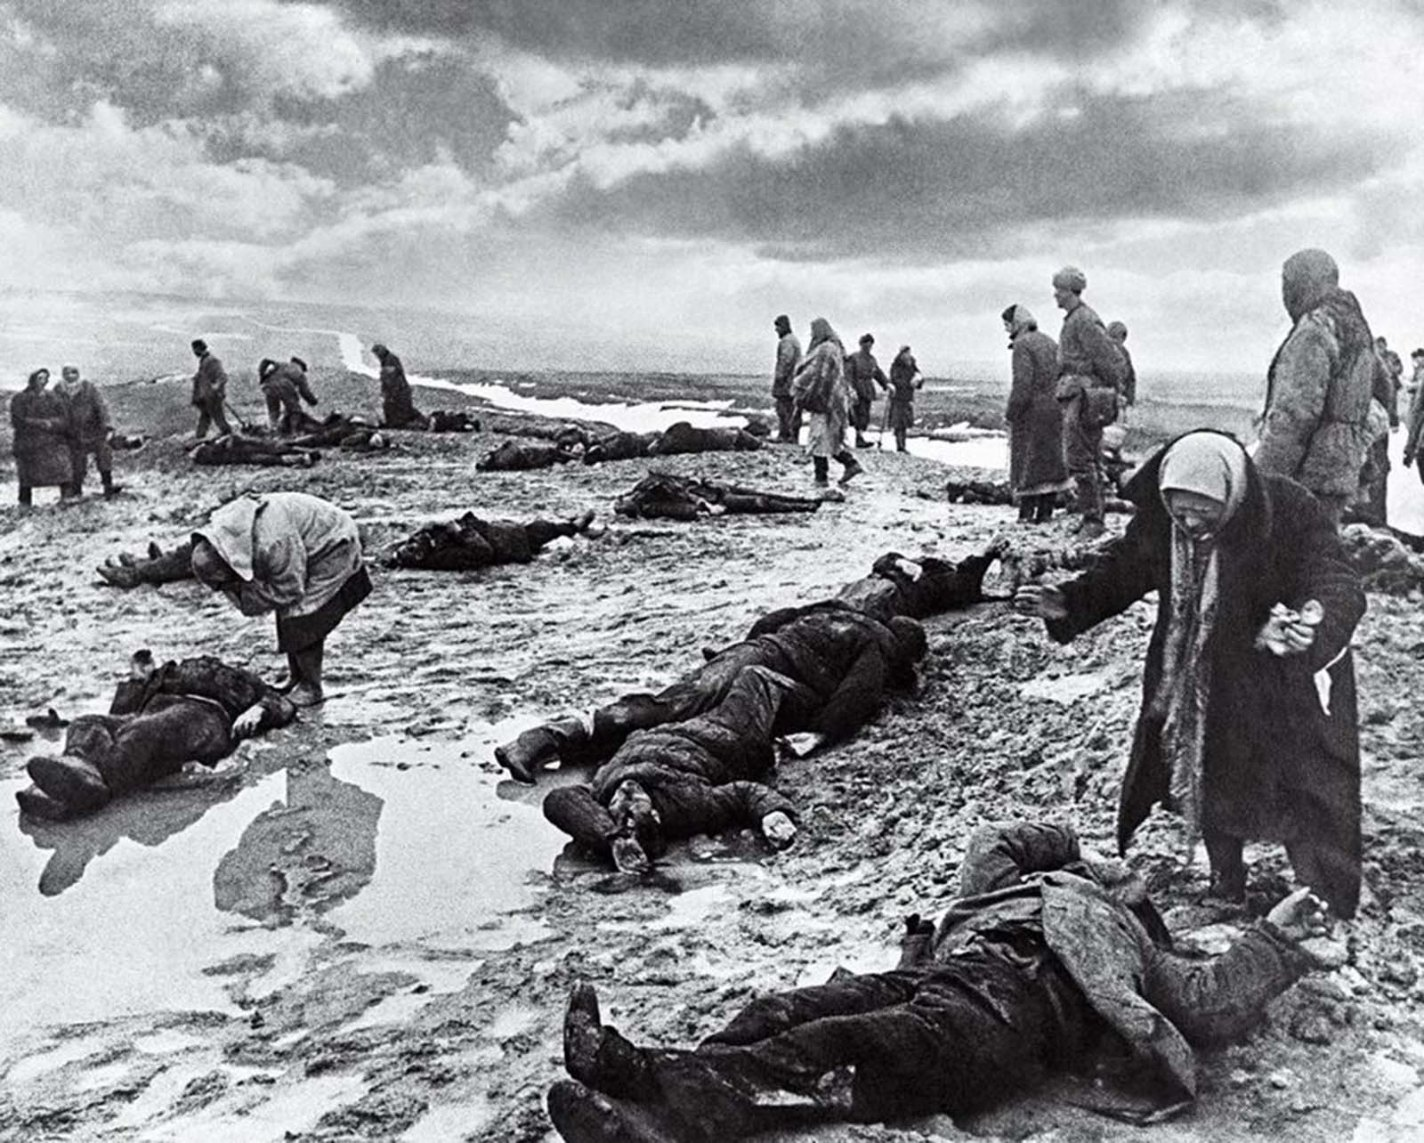 history photo Grief, Dmitri Baltermants, 1942